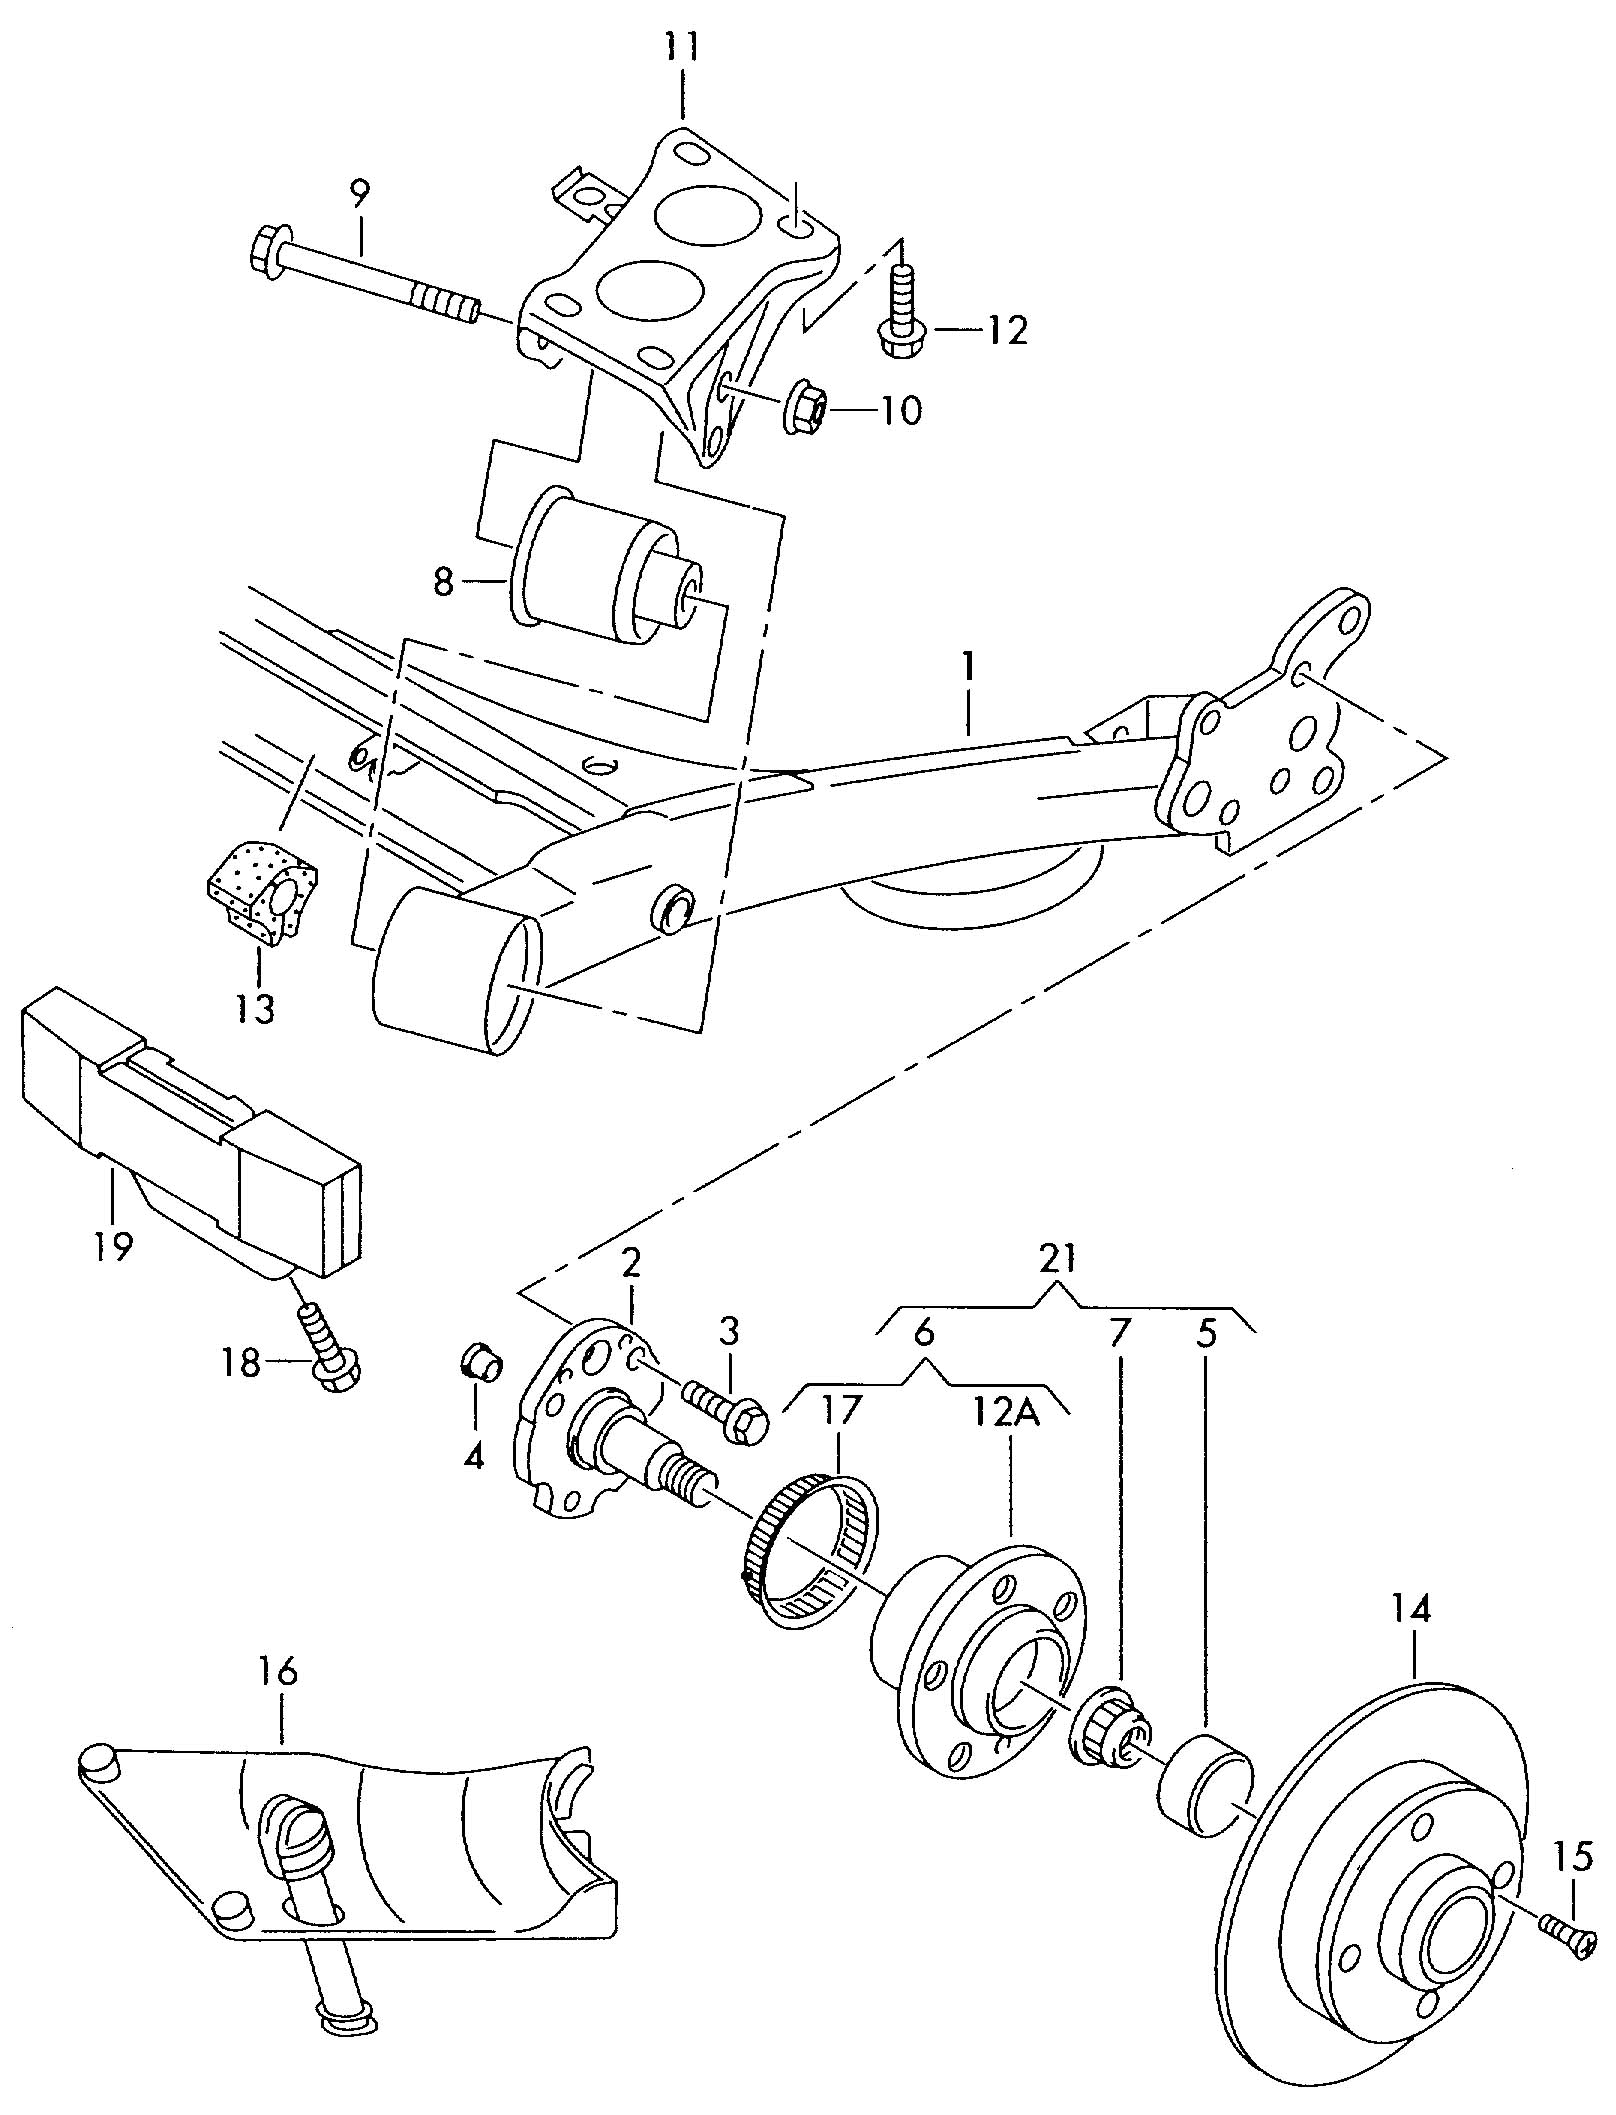 Volkswagen Jetta Comprising  Wheel Bearing With Mounting Parts  Wheel Bearing Kit  Repair